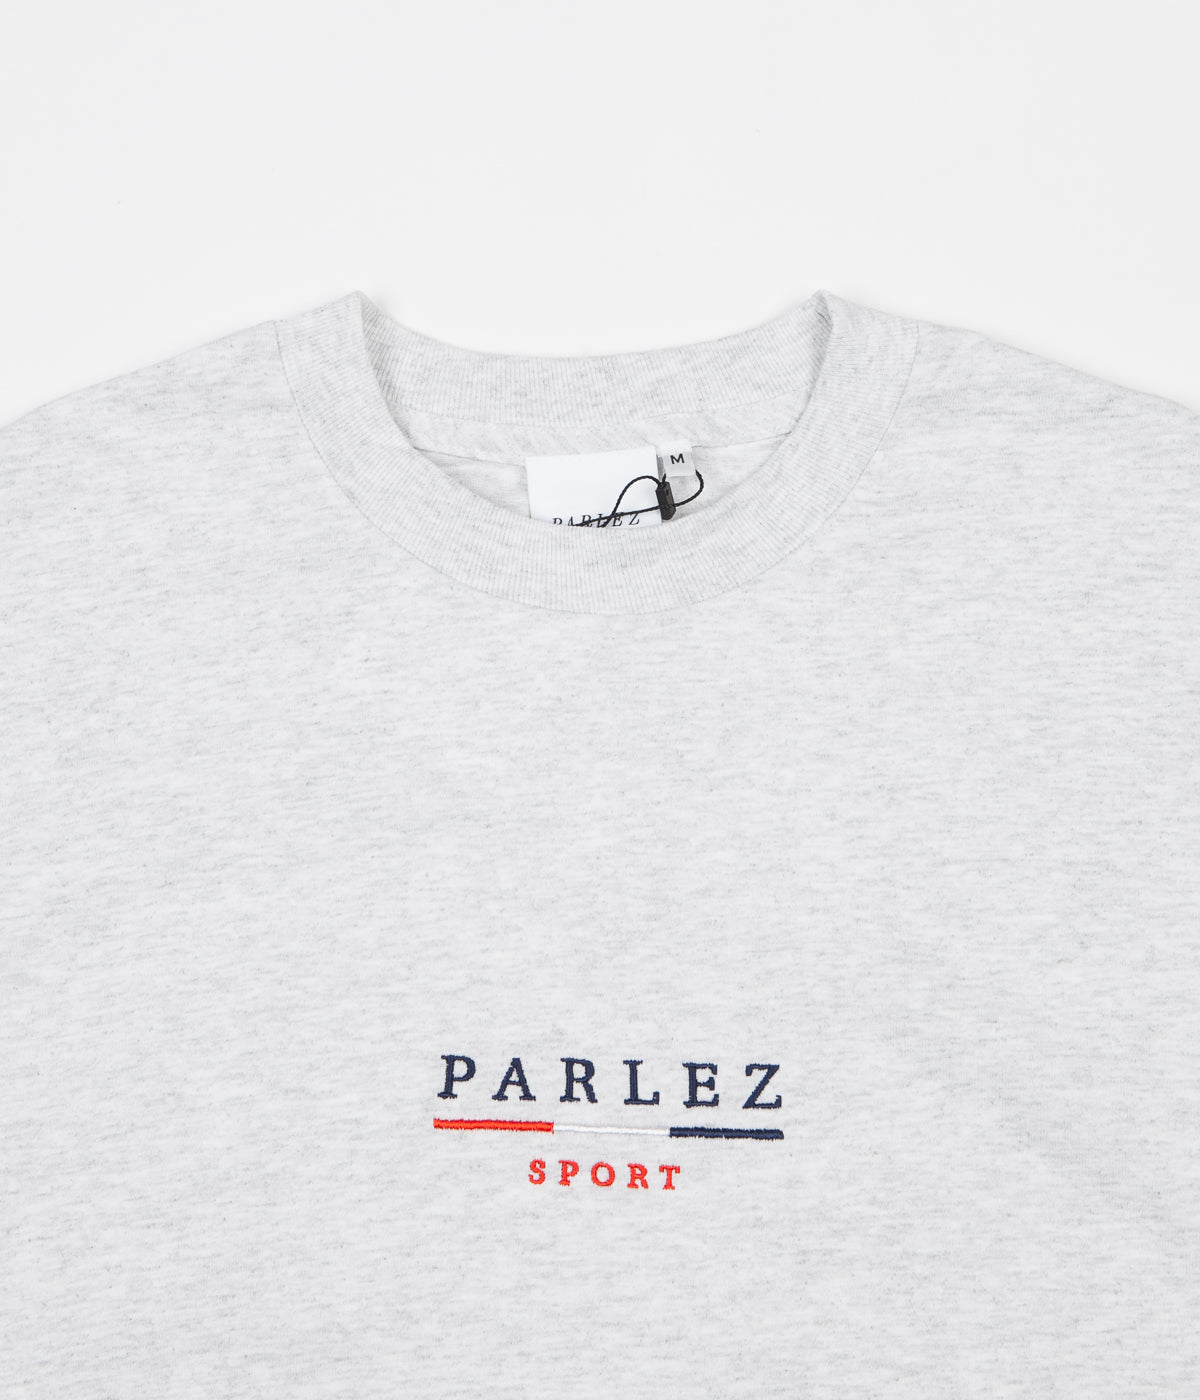 Parlez Trisport T-Shirt - Light Heather